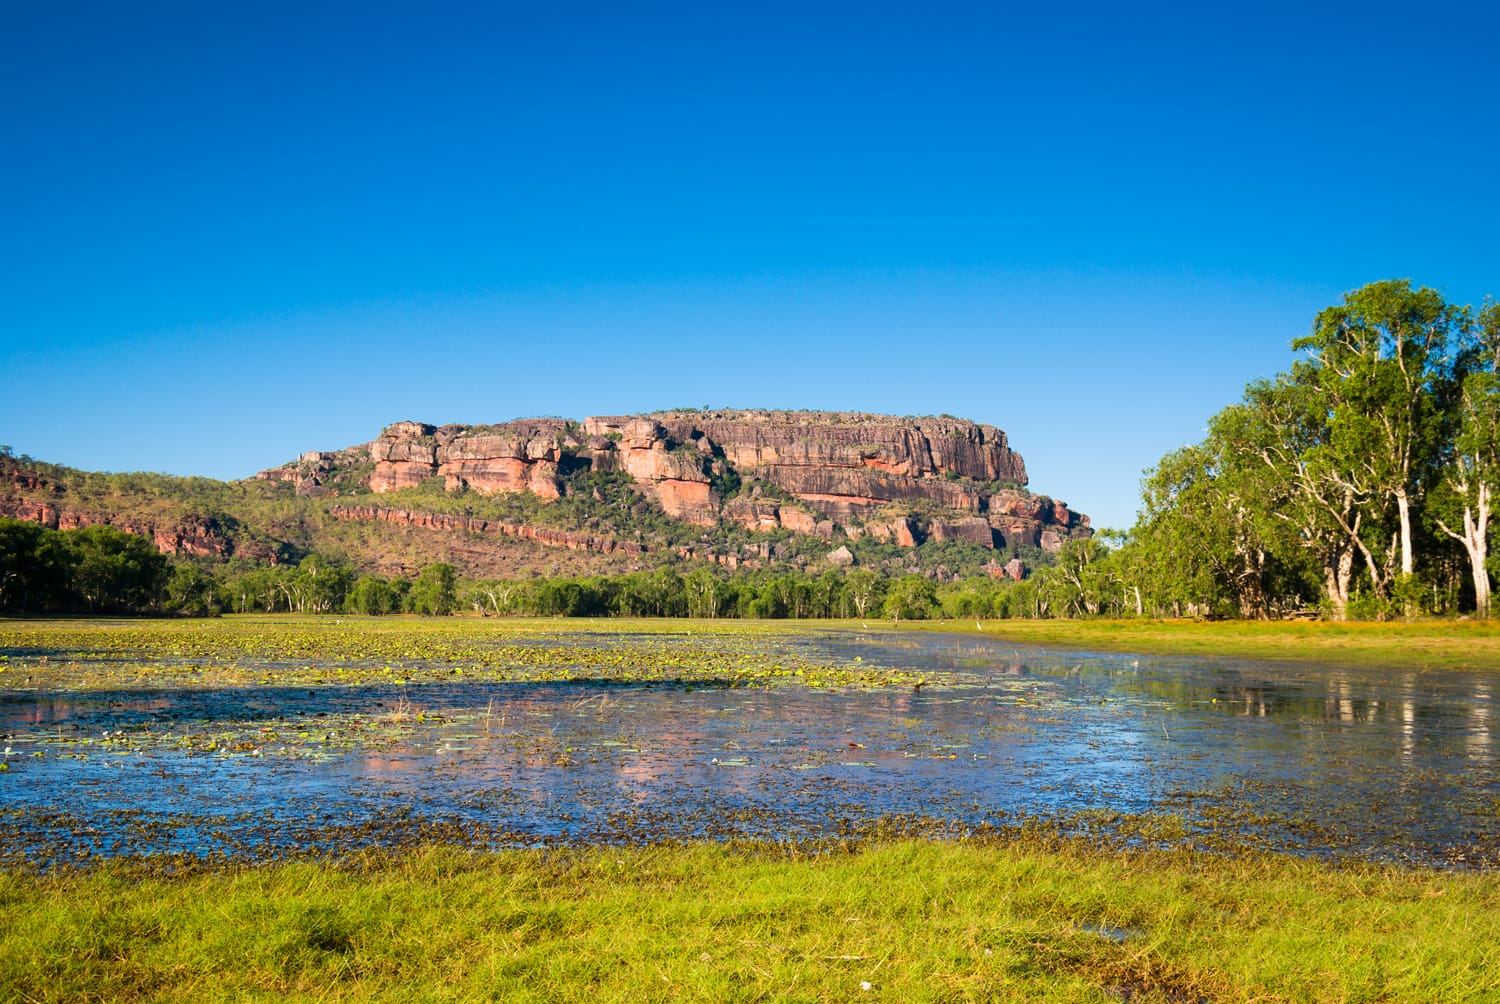 View to Nourlangie from Anbangbang Billabong, Kakadu National Park, Australia